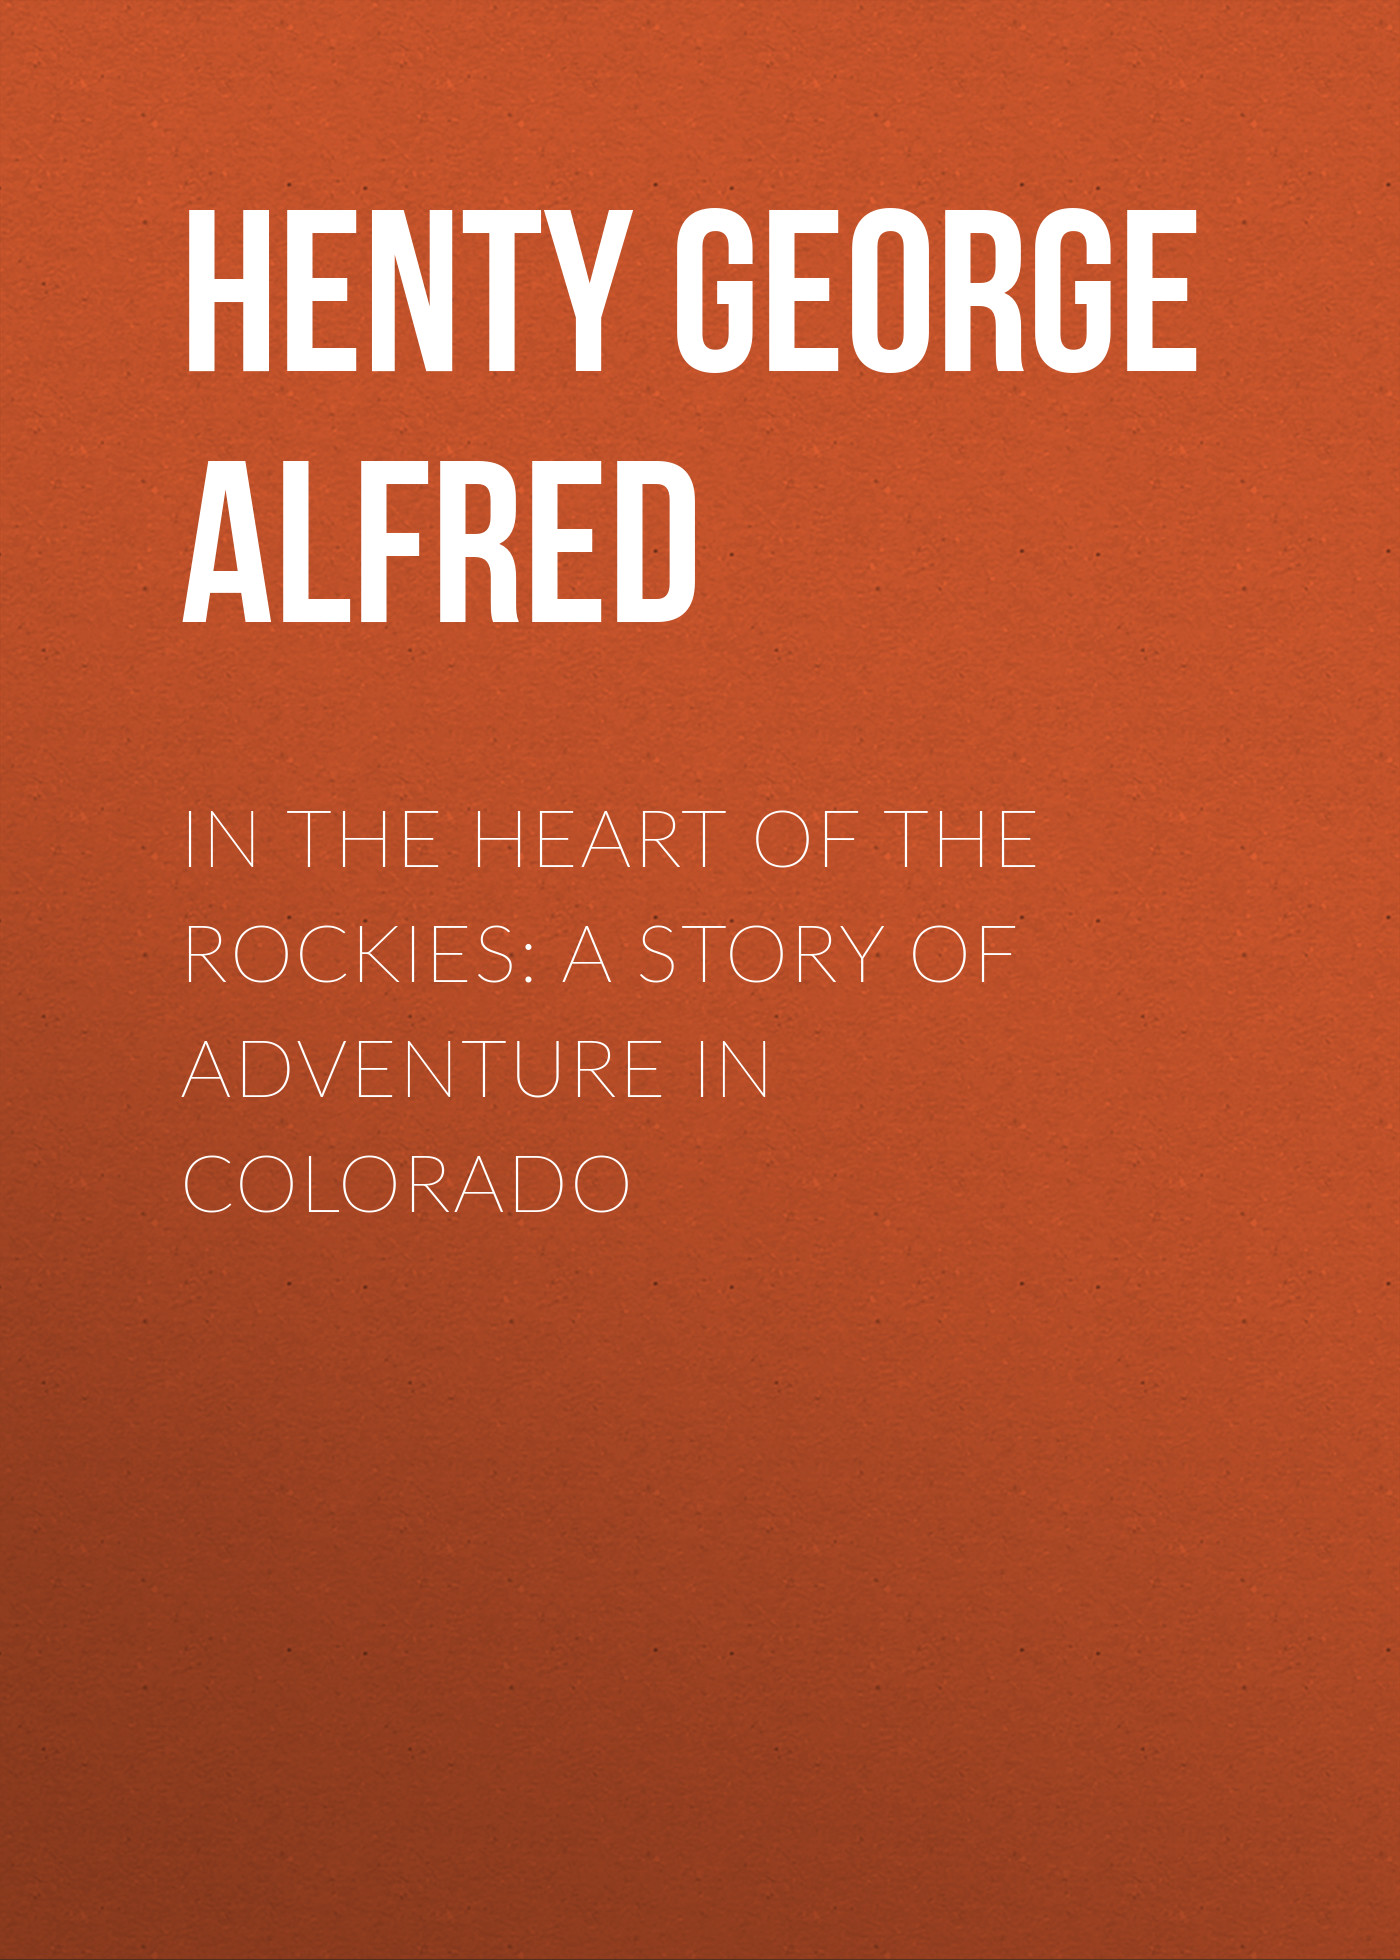 Henty George Alfred In the Heart of the Rockies: A Story of Adventure in Colorado george alfred henty with lee in virginia a story of the american civil war